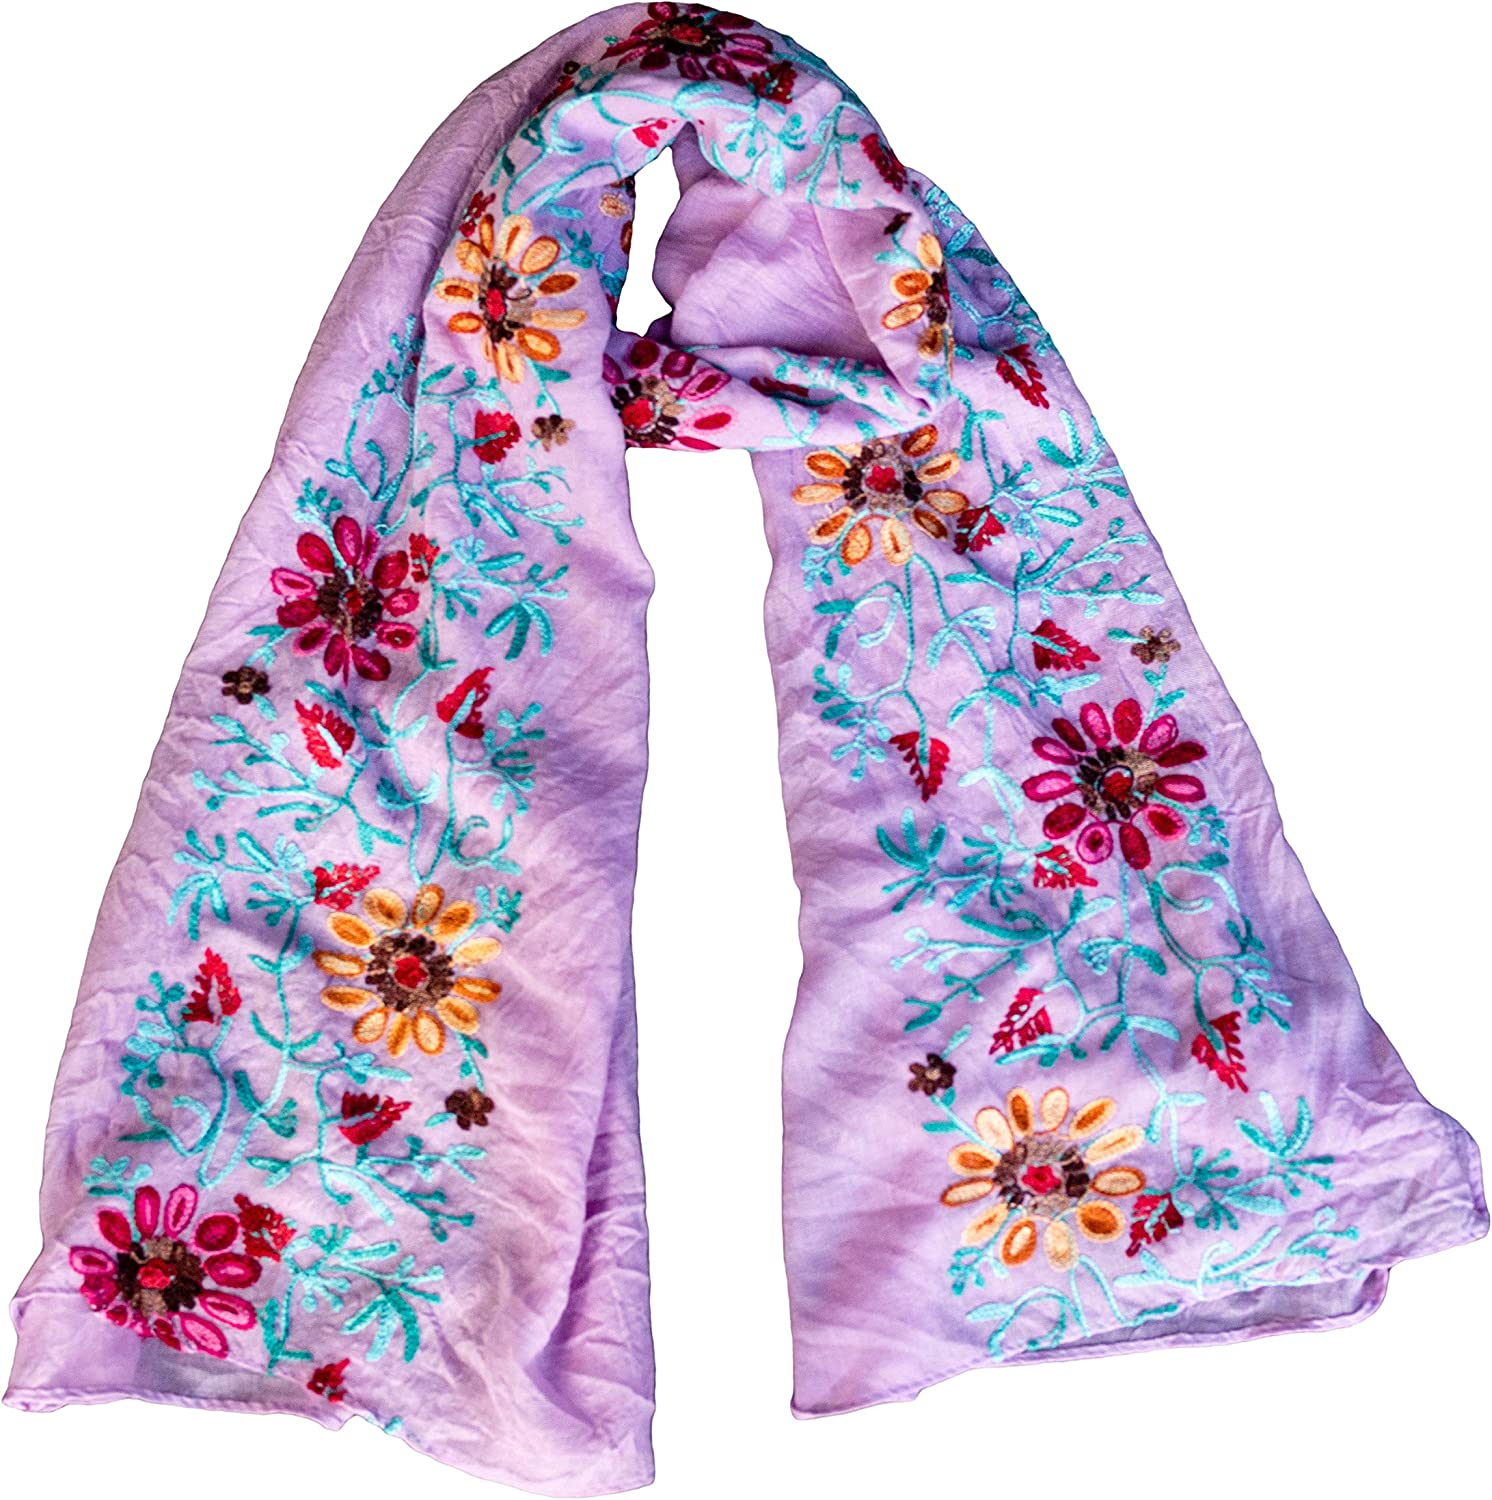 LuluVin Max 40% OFF Women's Max 41% OFF Scarf Cotton Lightweight Wrap Embroidered Shawl